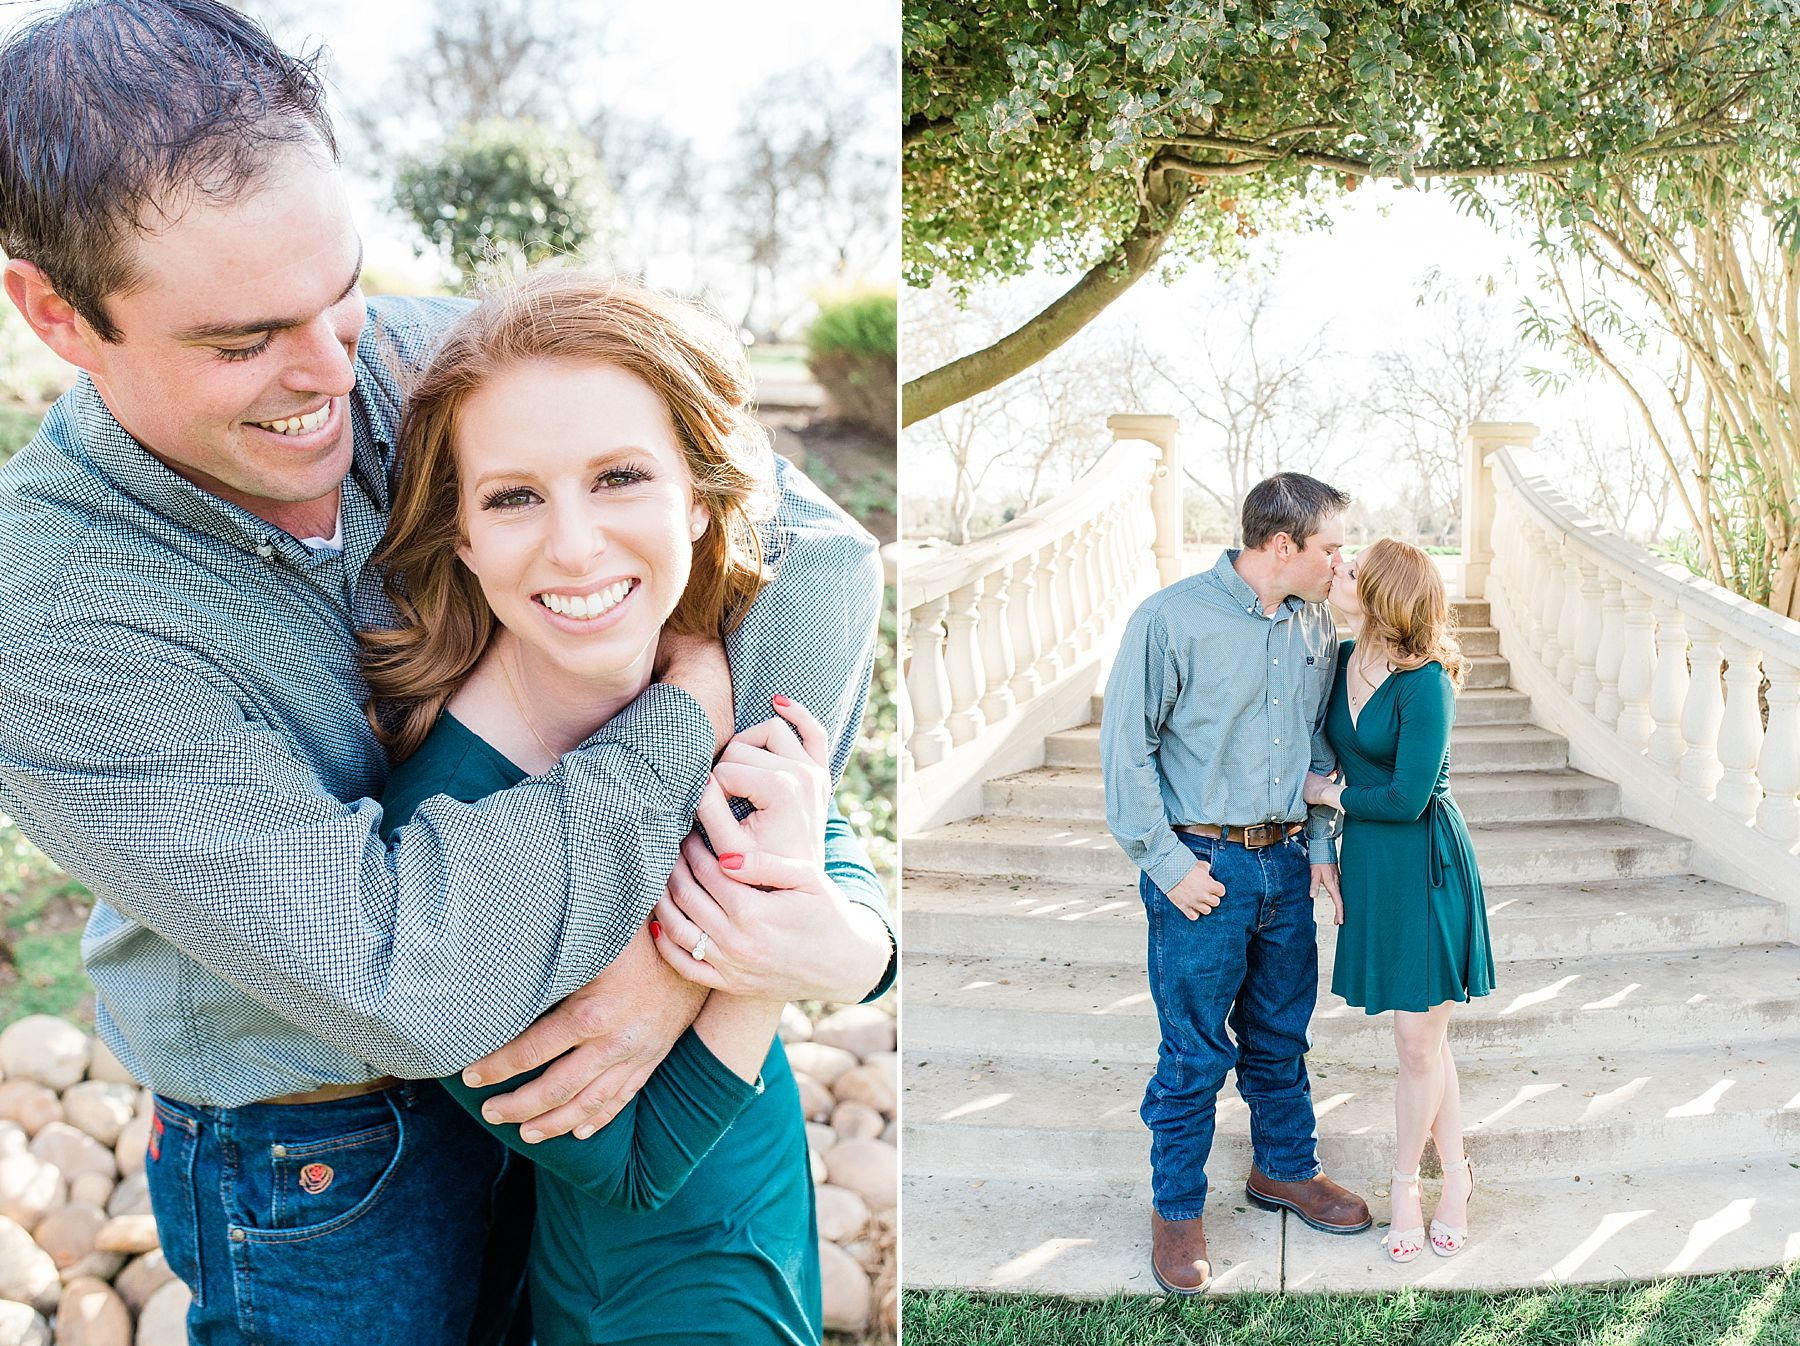 Viaggio Winery Engagement Session - Liz and TJ - Lodi Winery Wedding Photographer_0026.jpg